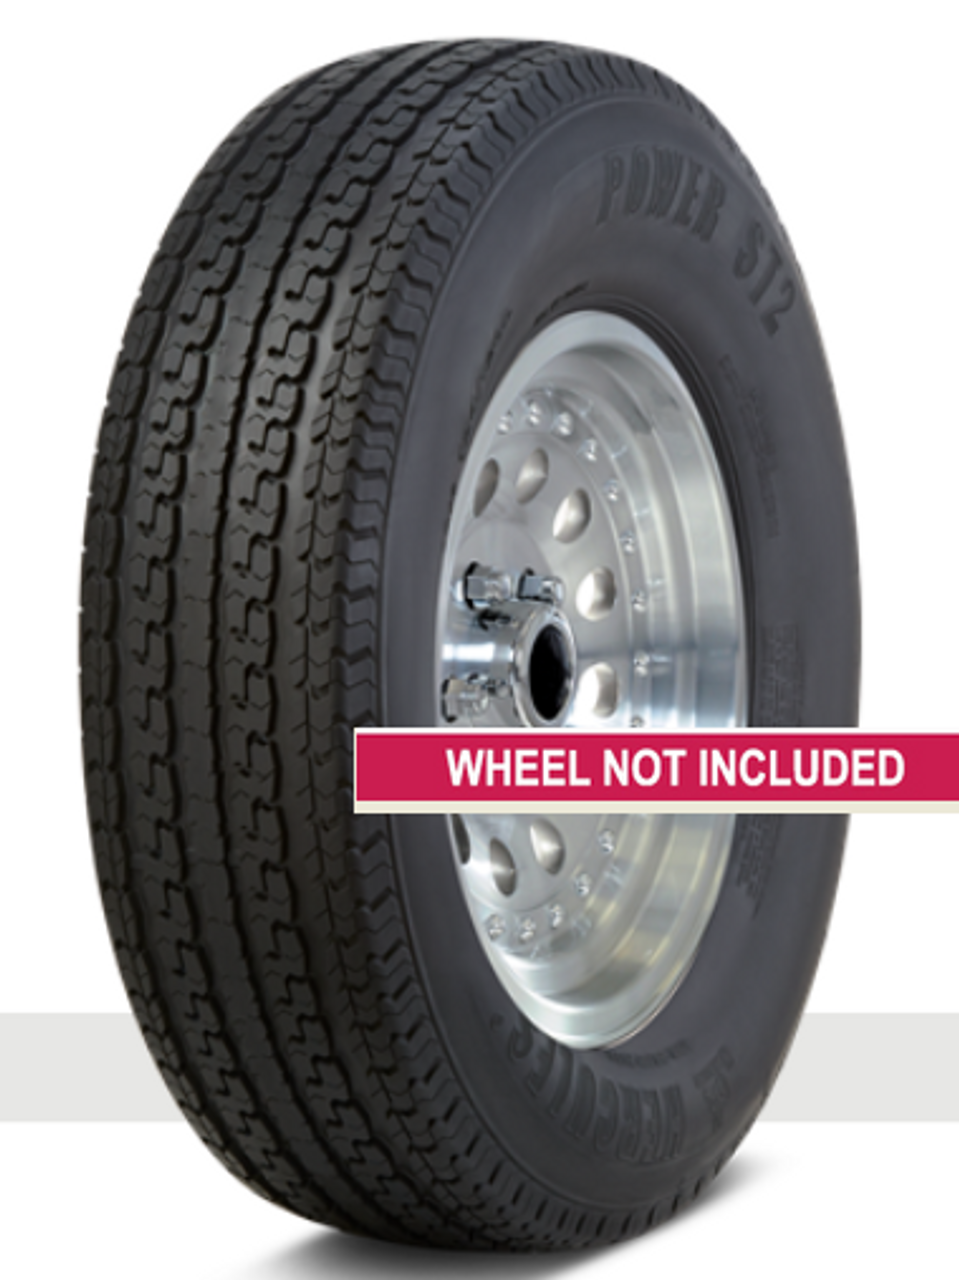 New Tire 205 75 14 Hercules Power ST2 Trailer 6 Ply ST205/75R14 Radial ATDST